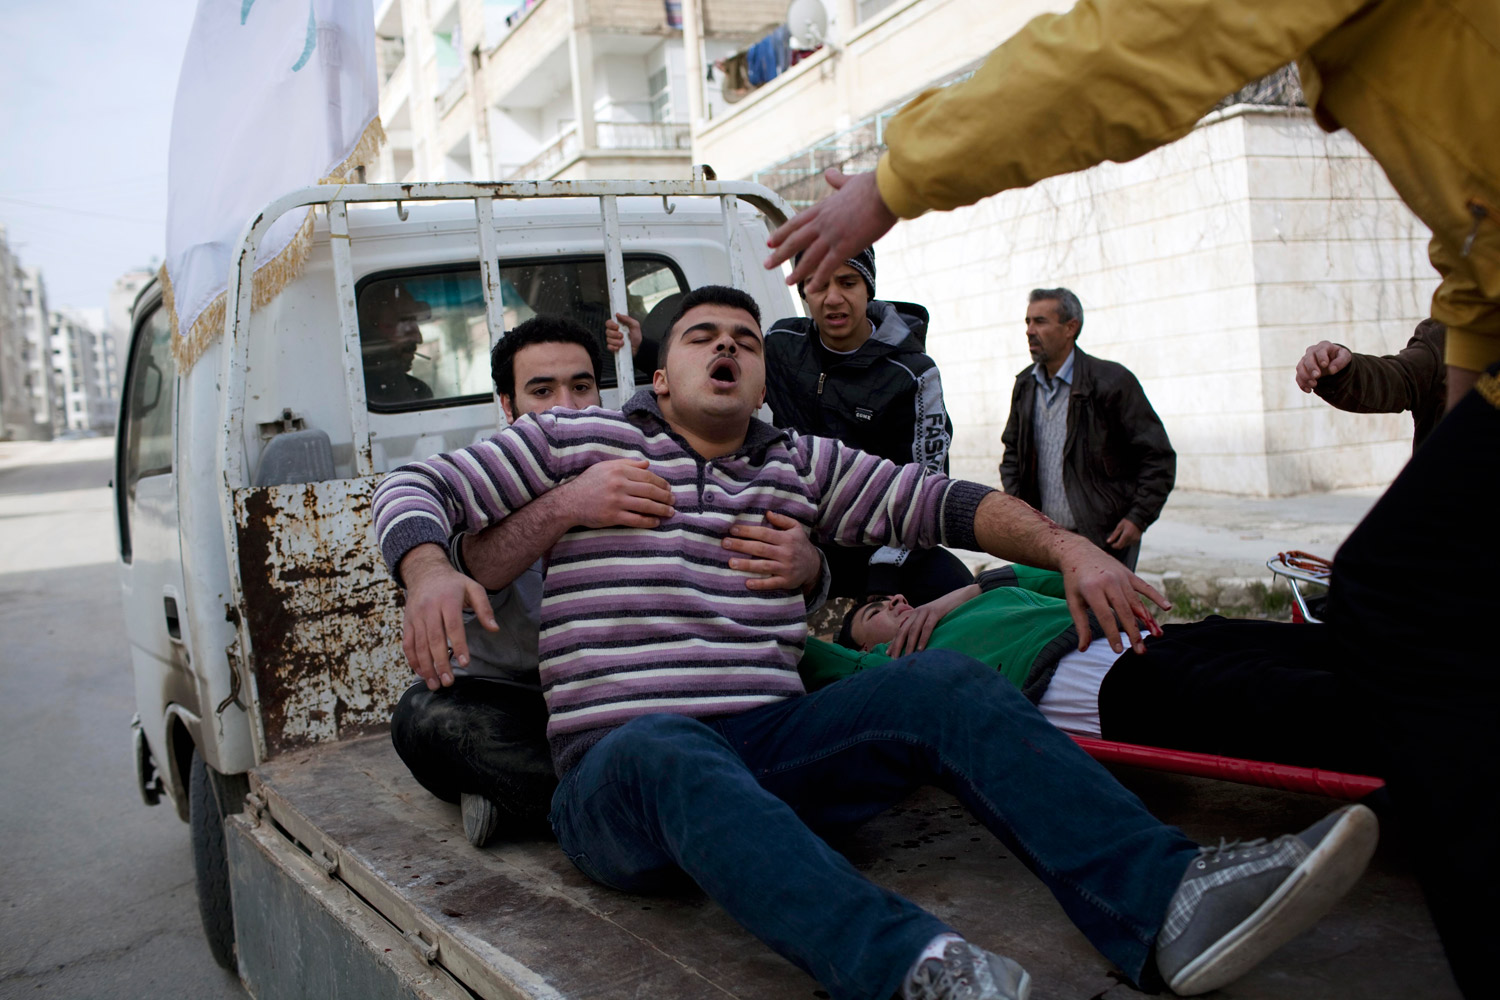 March 10, 2012. Injured men are carried to a hospital during fierce fighting between Free Syrian Army fighters and government troops in Idlib, Syria.